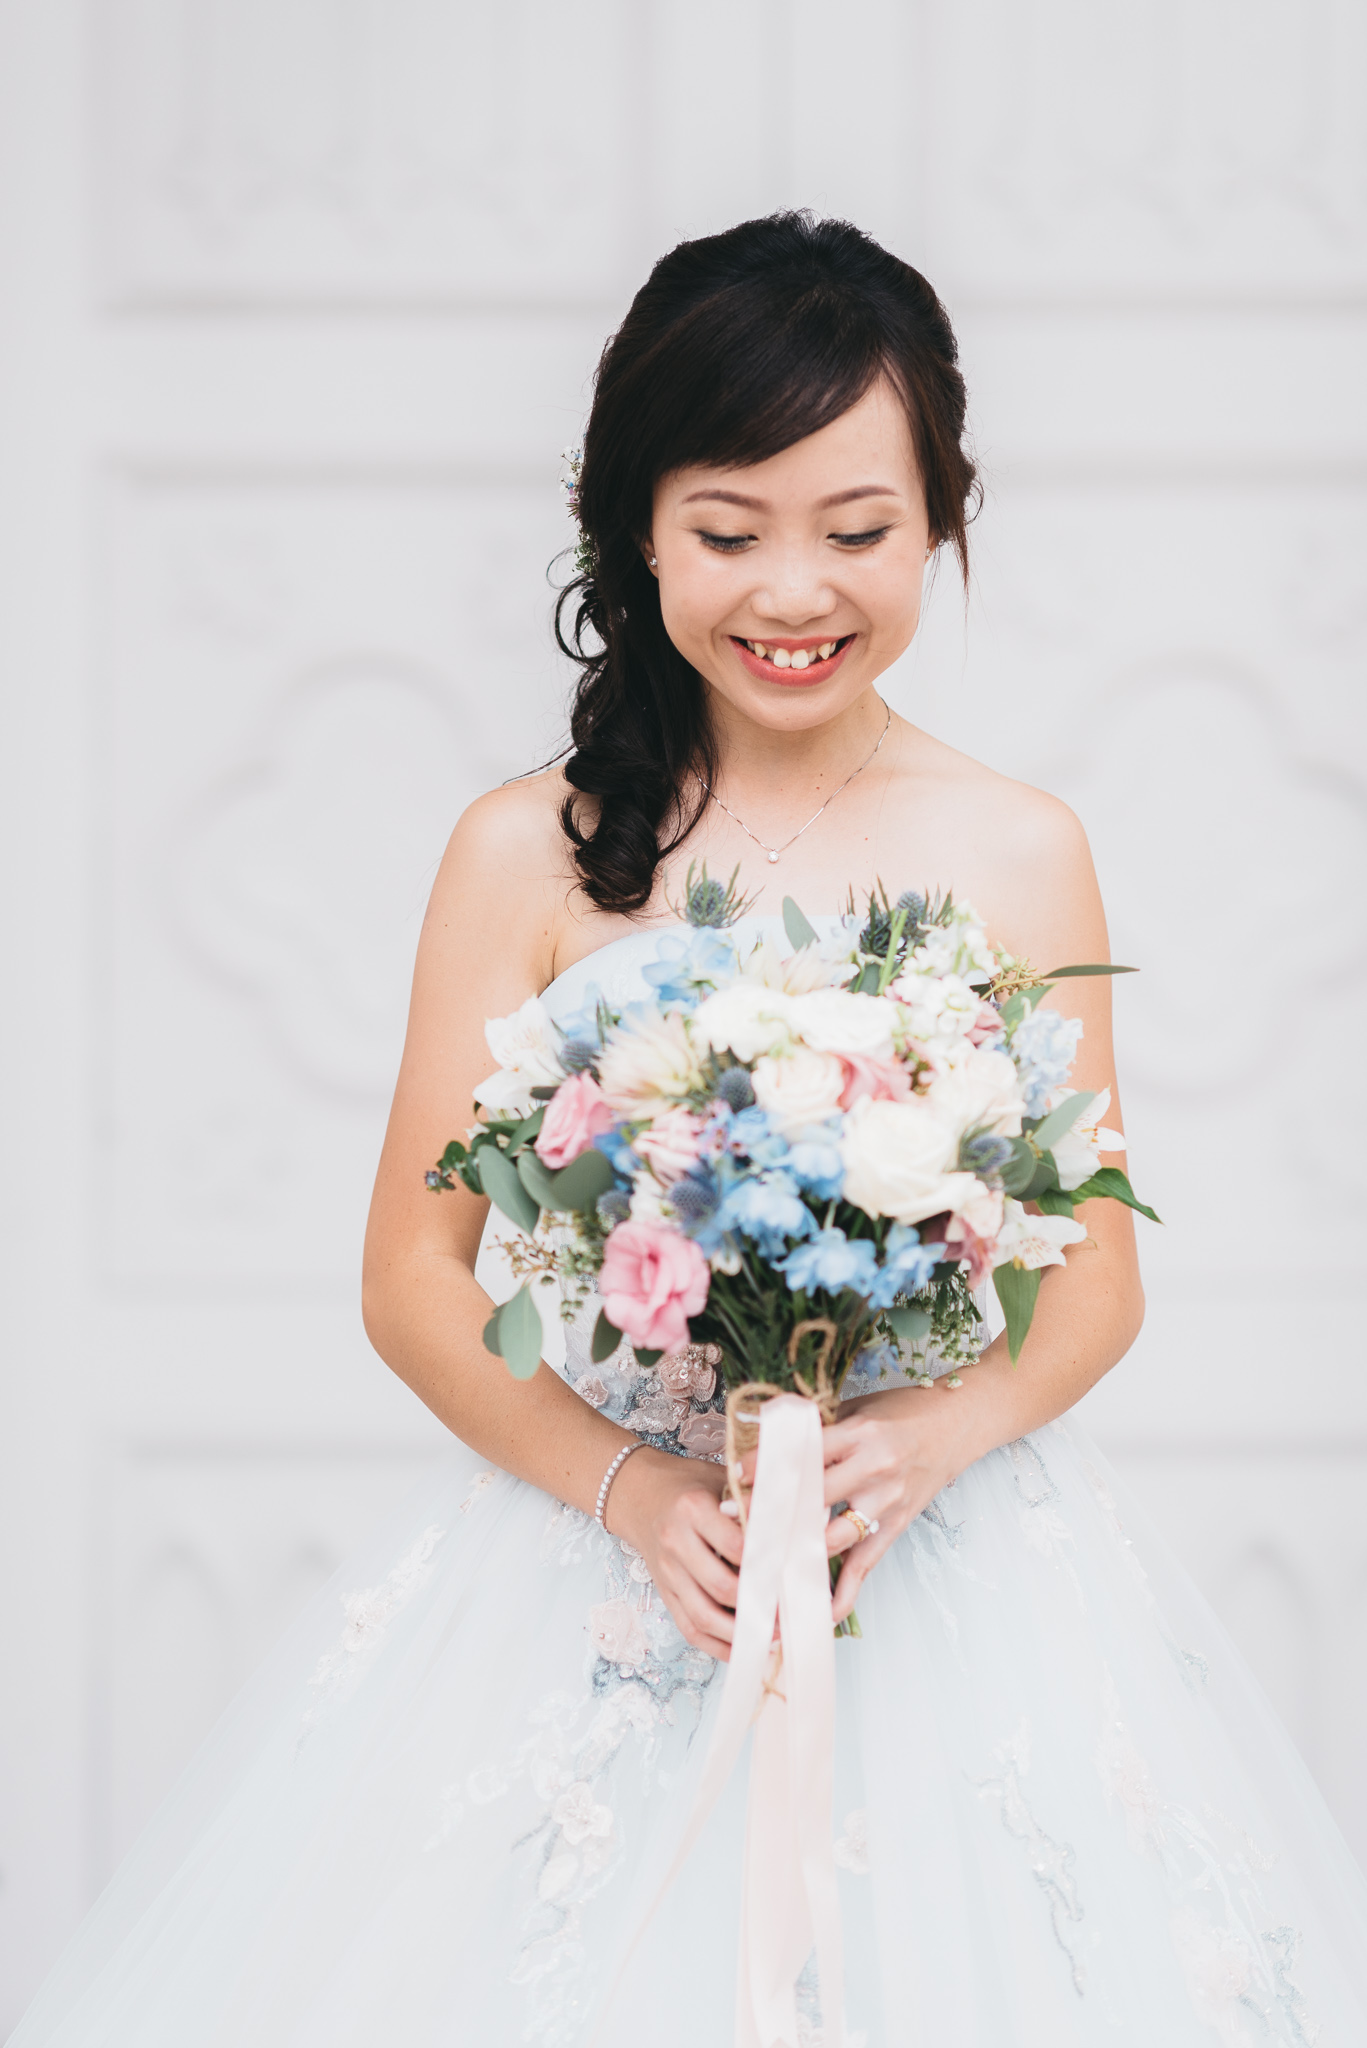 Alice & Wei Bang Wedding Day Highlights (resized for sharing) - 099.jpg